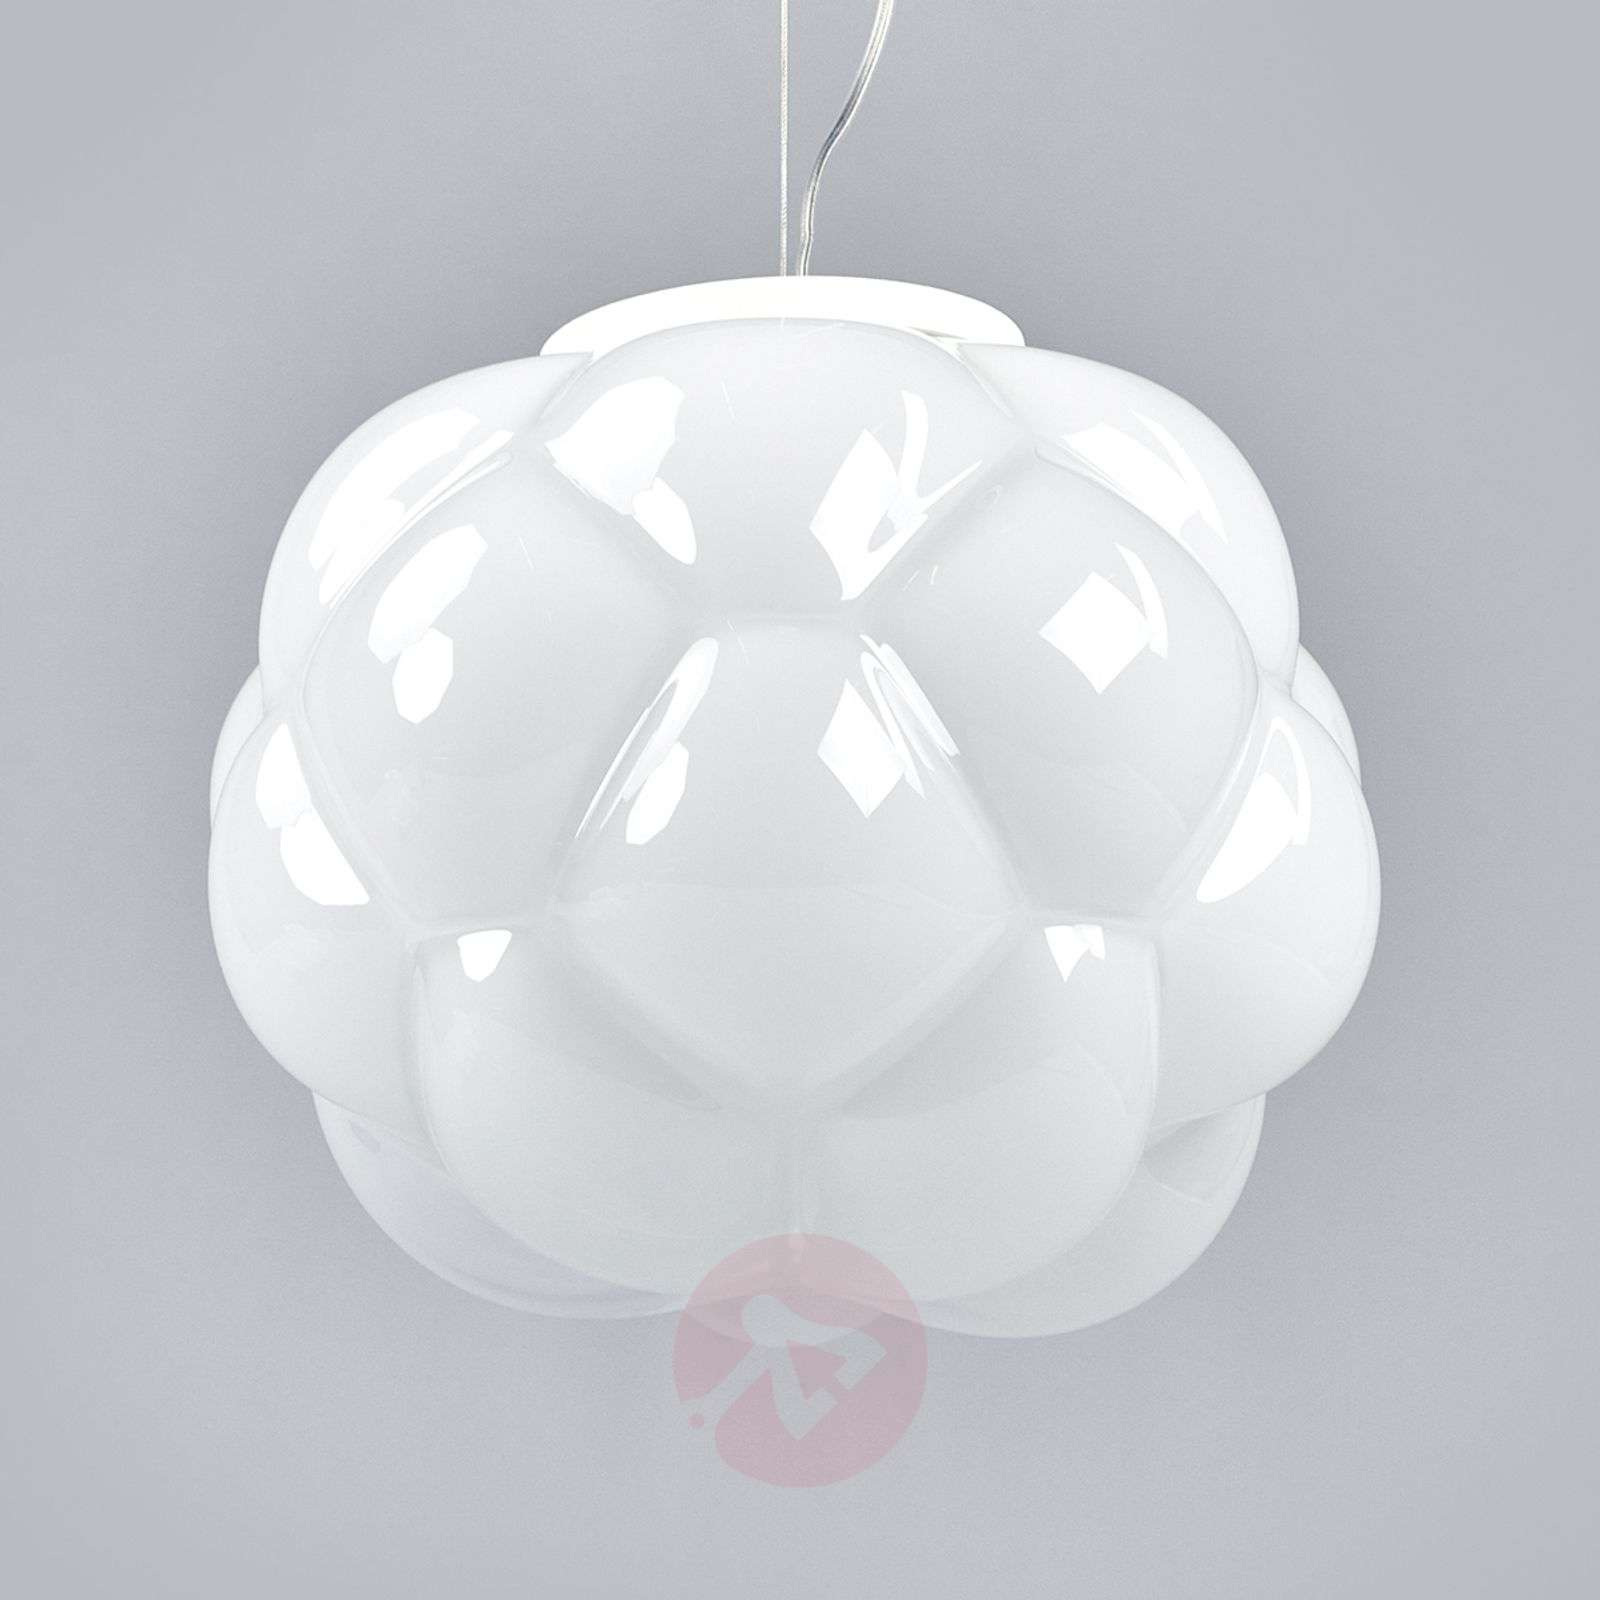 Wolkvormige LED hanglamp Cloudy-3503192X-01